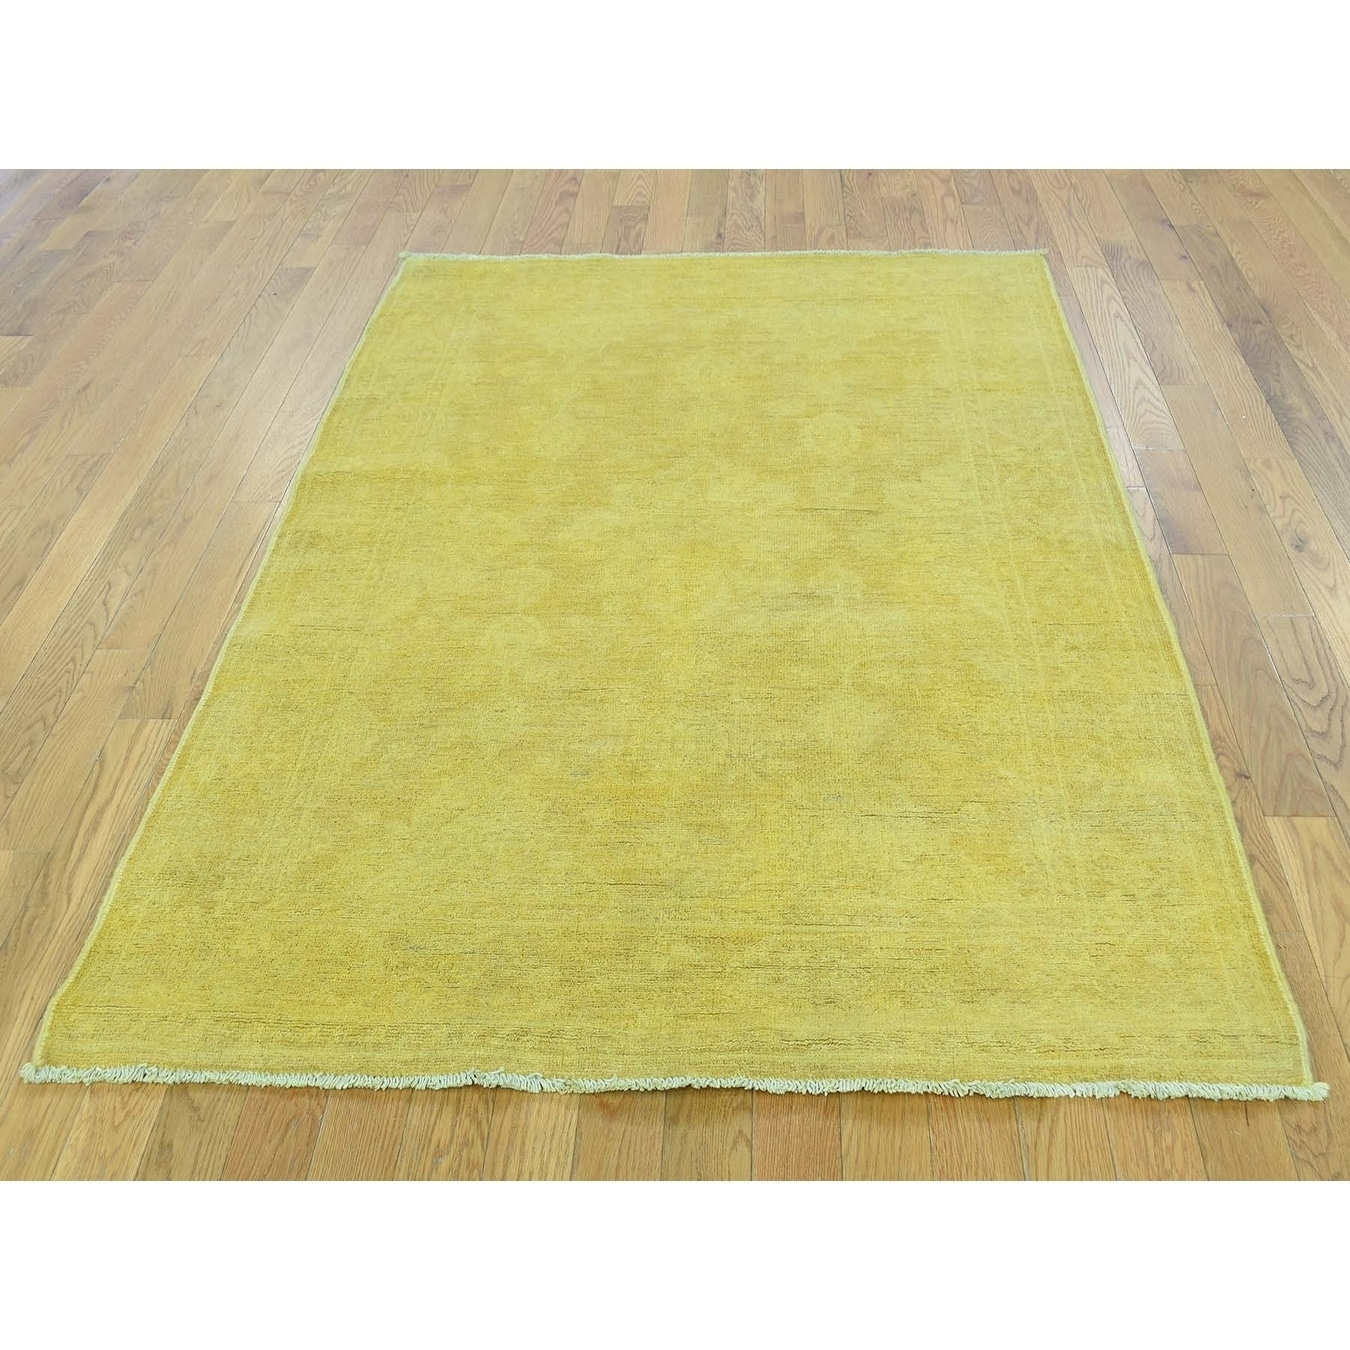 Hand Knotted Yellow Overdyed & Vintage with Wool Oriental Rug - 42 x 59